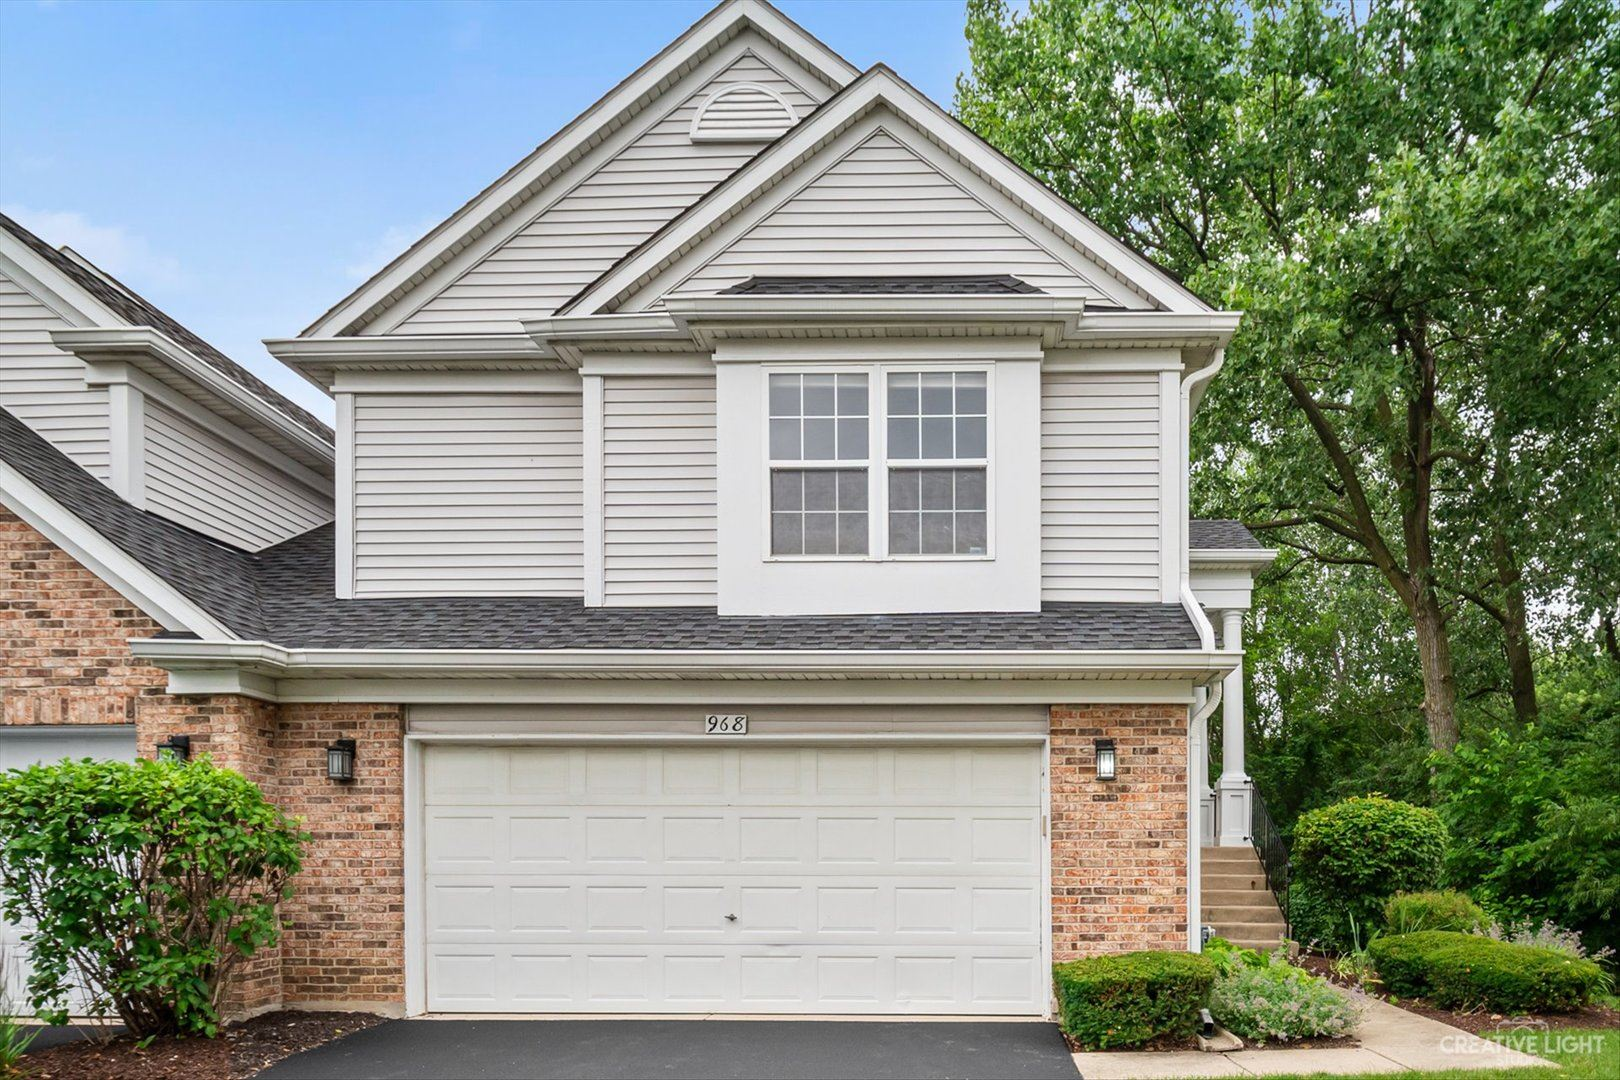 968 Ainsley Drive #0, West Chicago, IL 60185 - #: 11159609